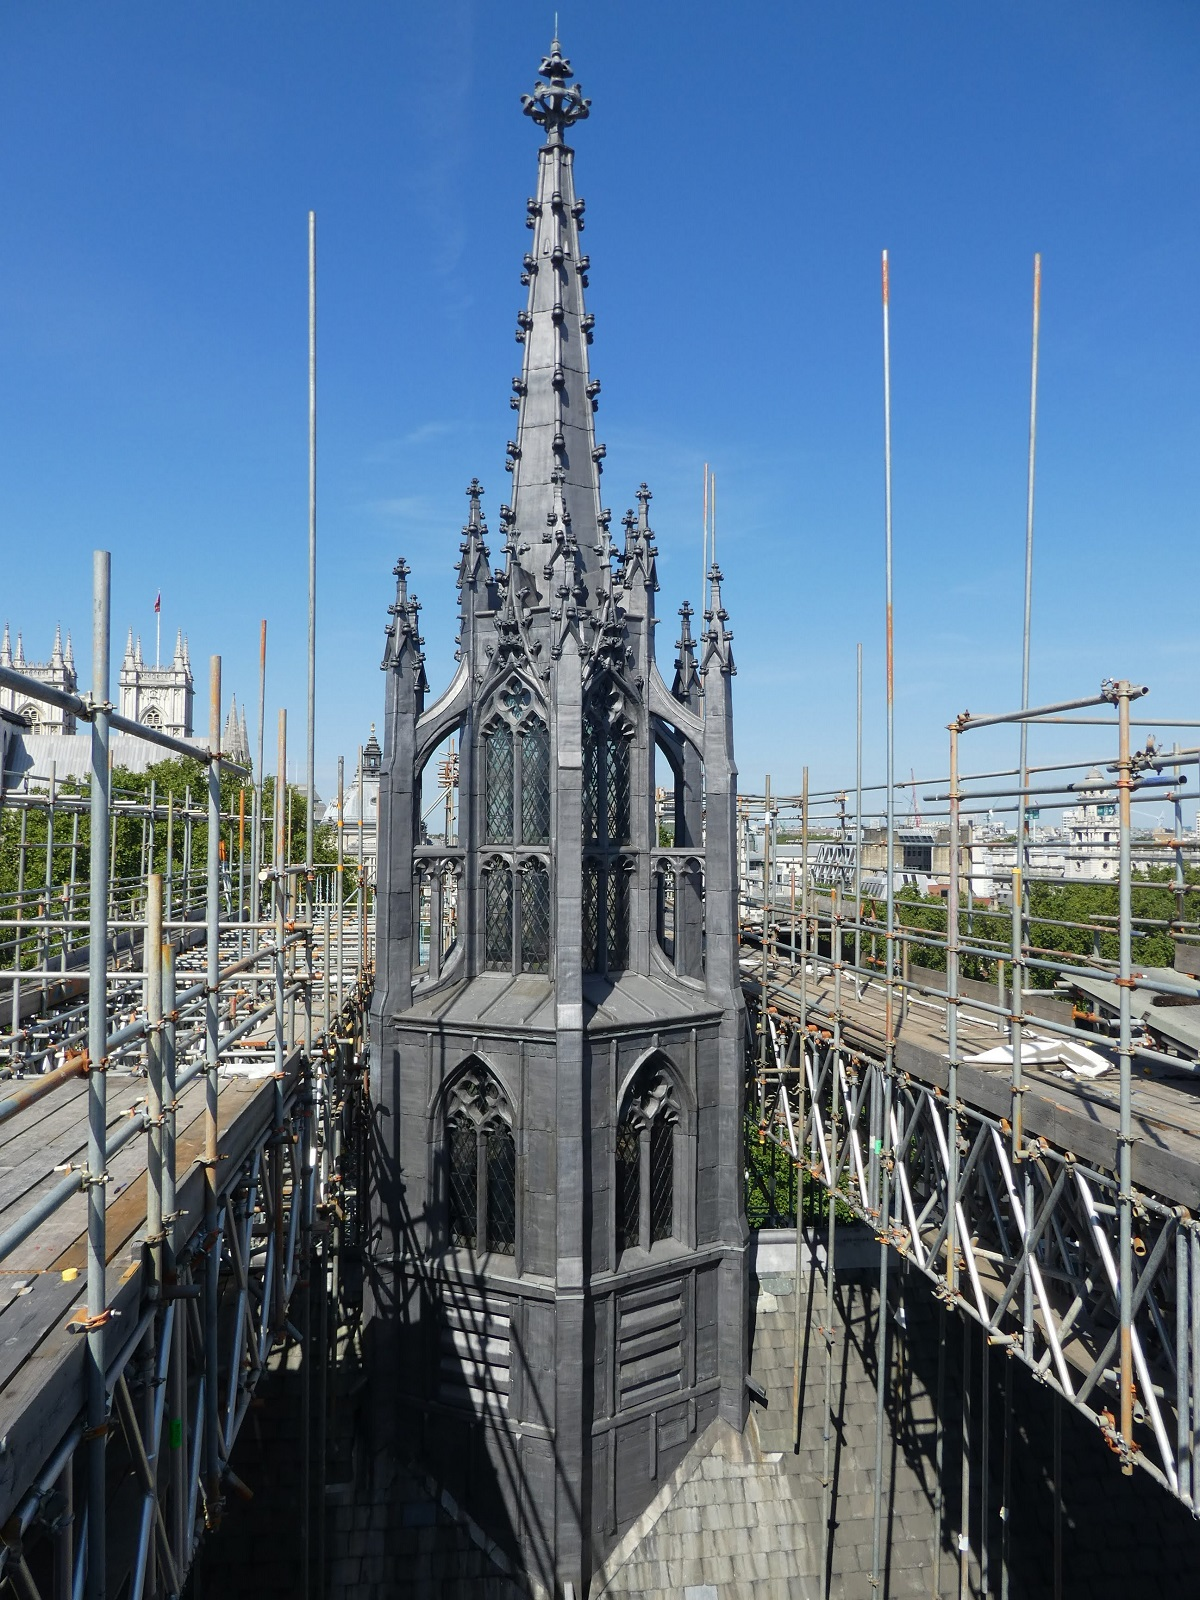 RESTORATION WORKS COMPLETE ON HISTORIC WESTMINSTER HALL